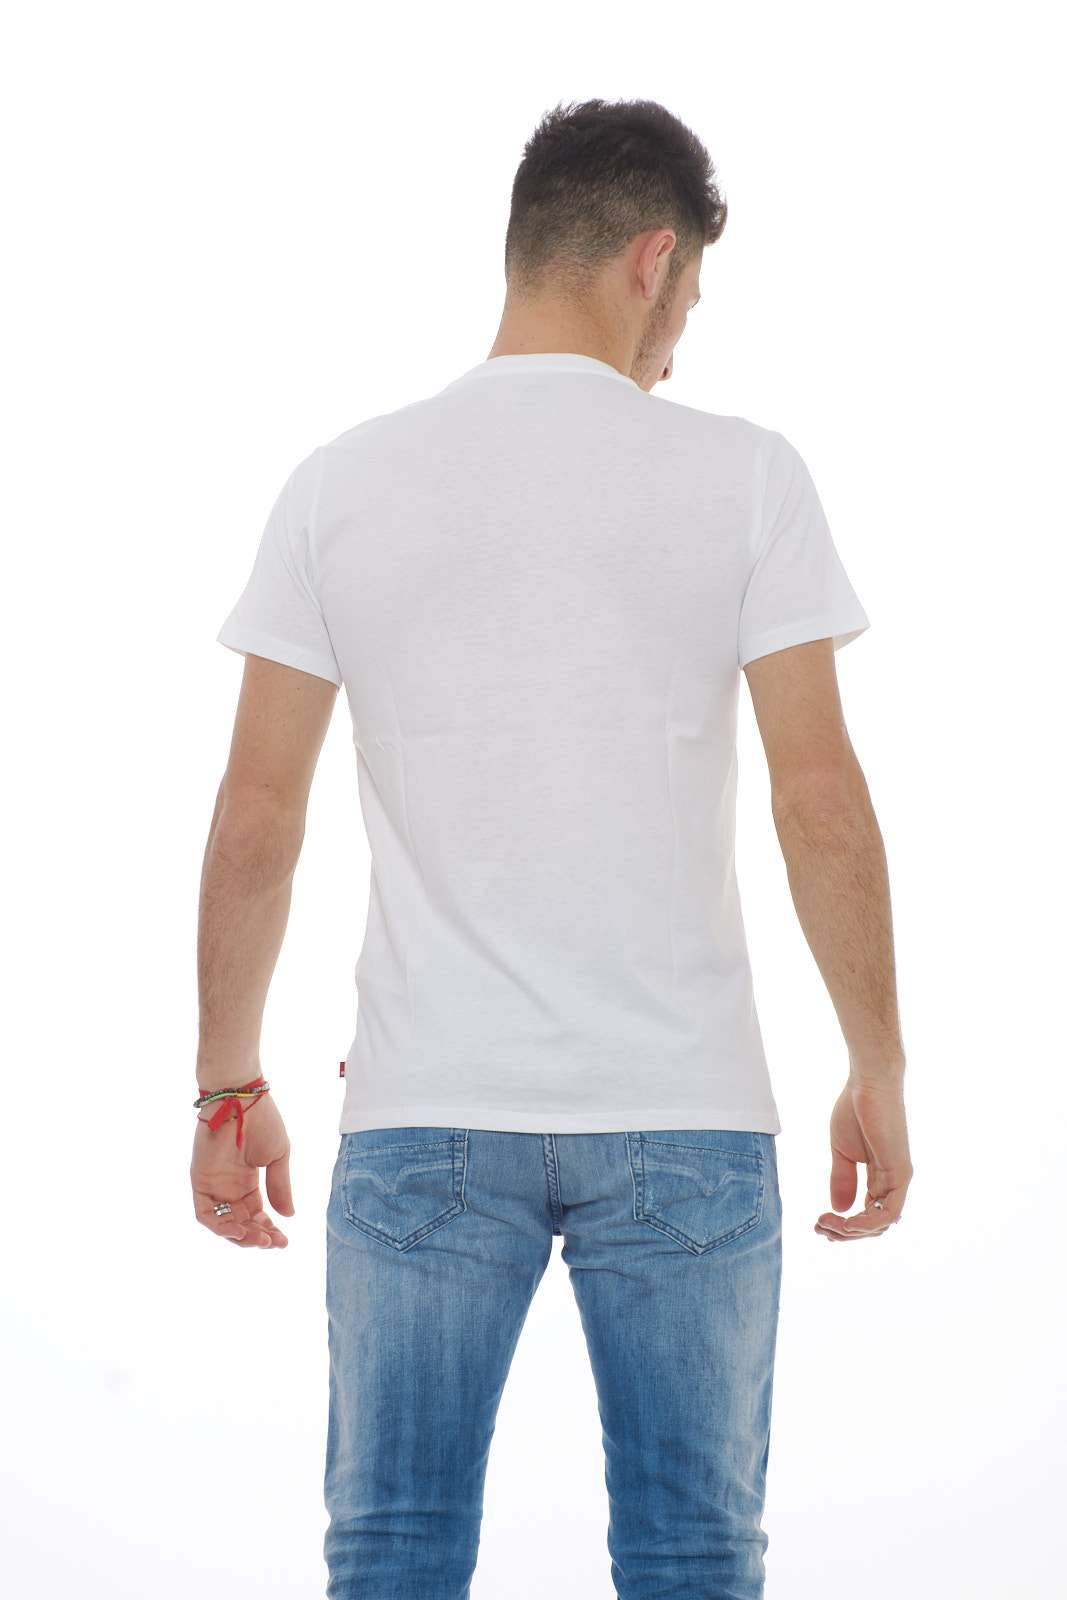 https://www.parmax.com/media/catalog/product/a/i/PE-outlet_parmax-t-shirt-uomo-Levis-17783-C_1.jpg